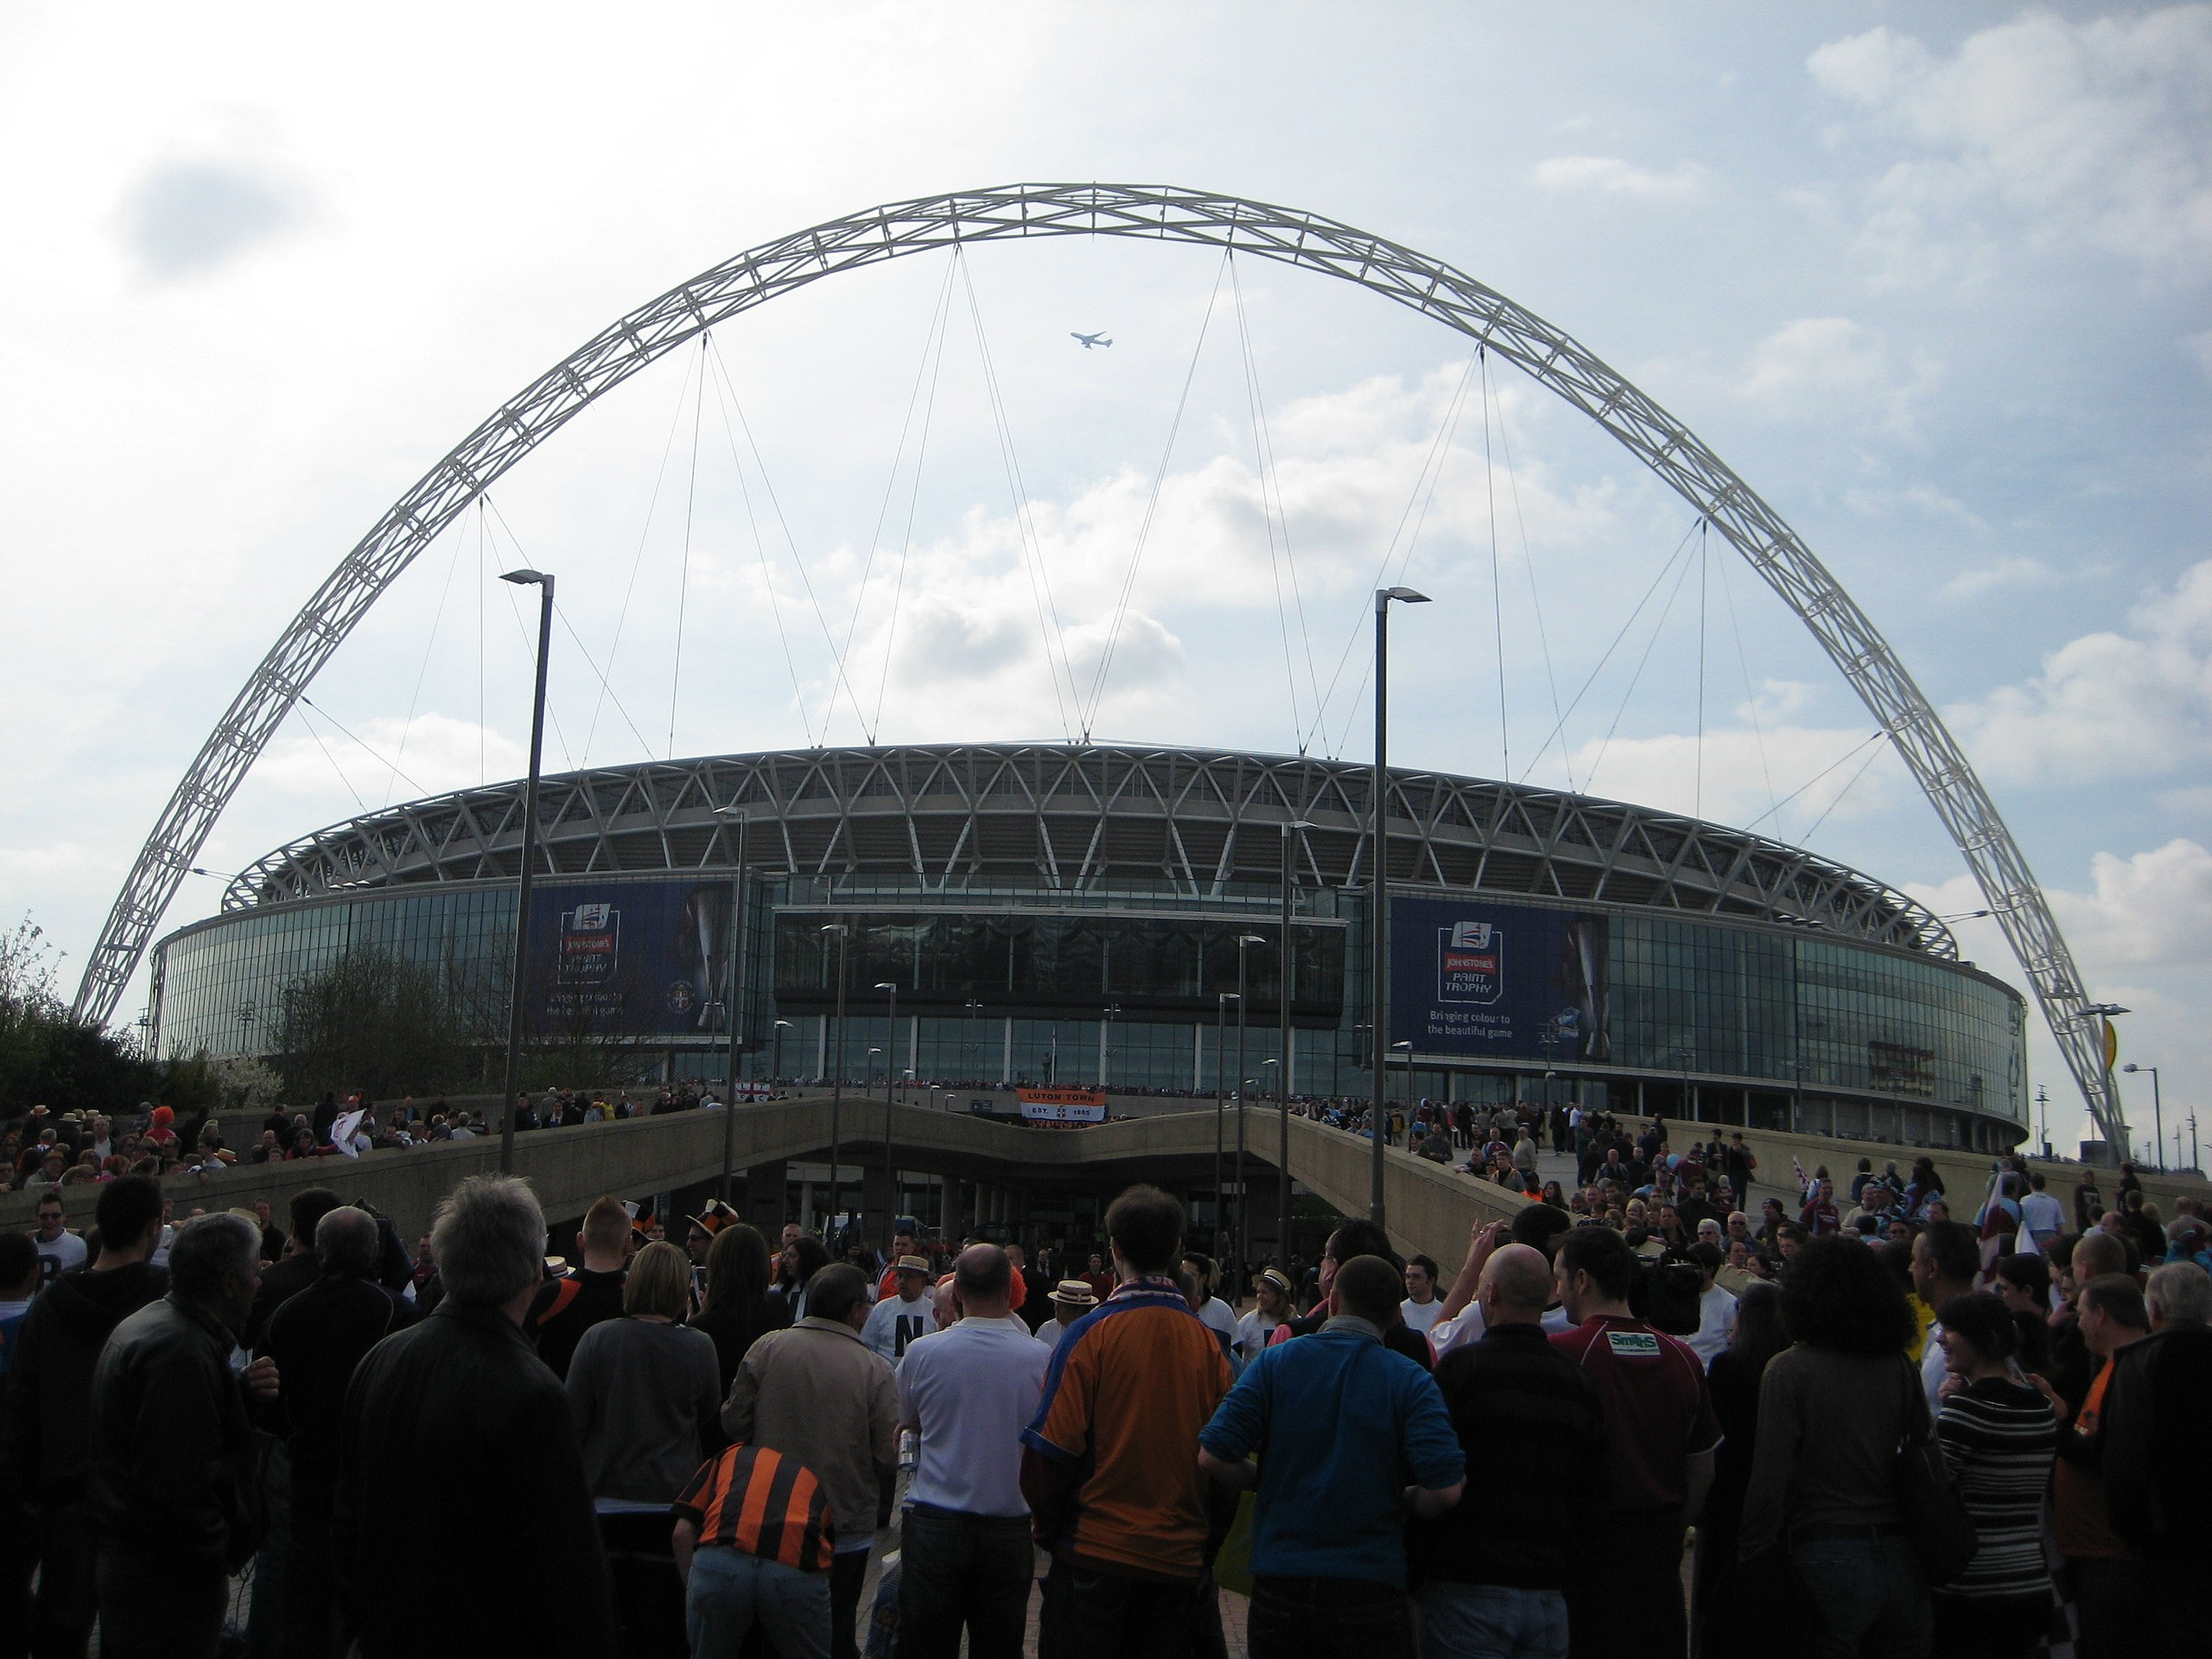 The Wembley Stadium